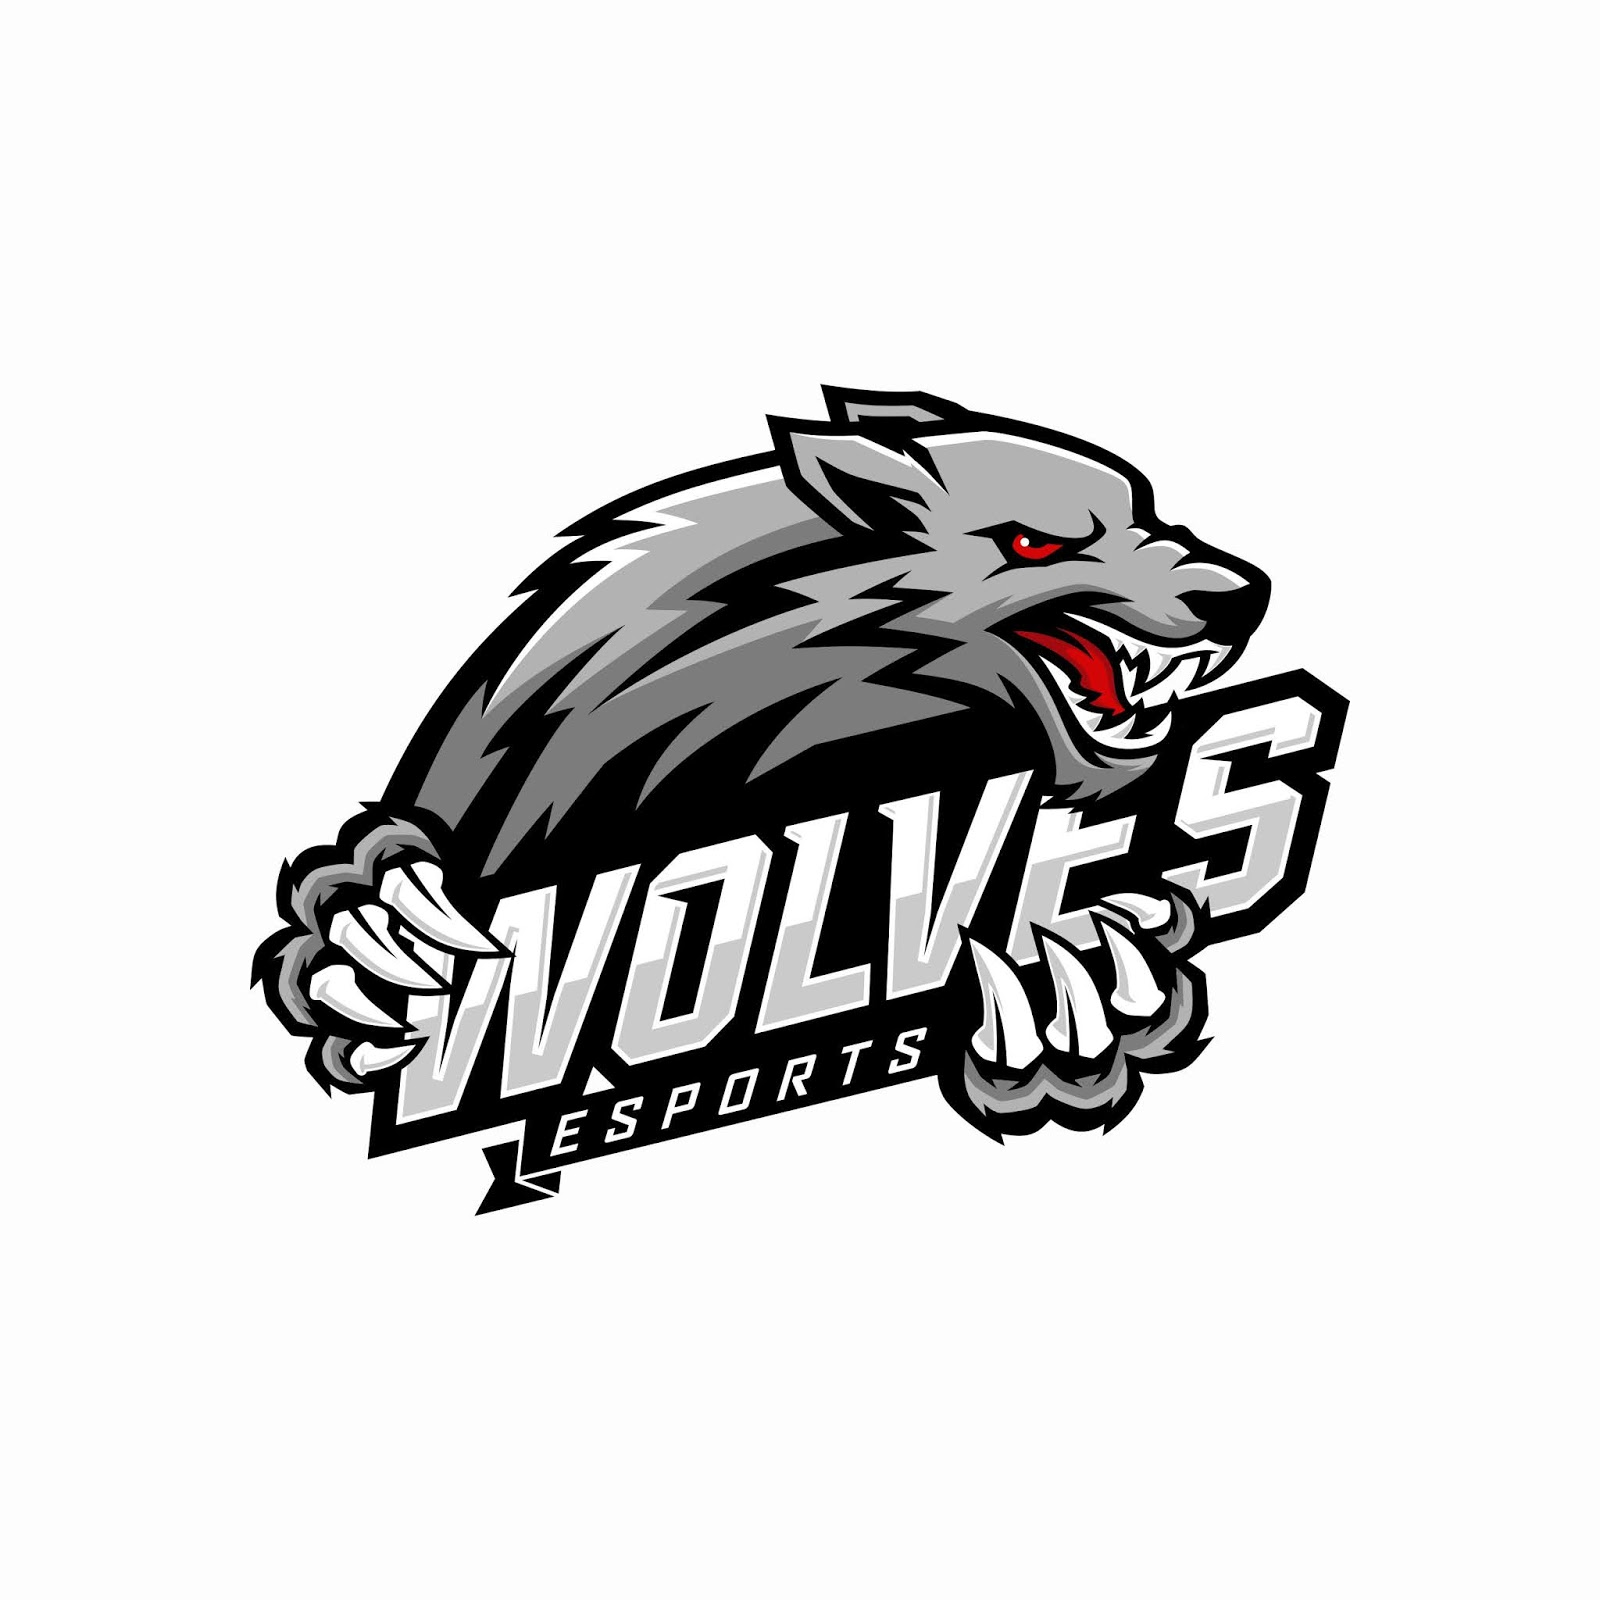 Wolf E Sports Logo Design Free Download Vector CDR, AI, EPS and PNG Formats